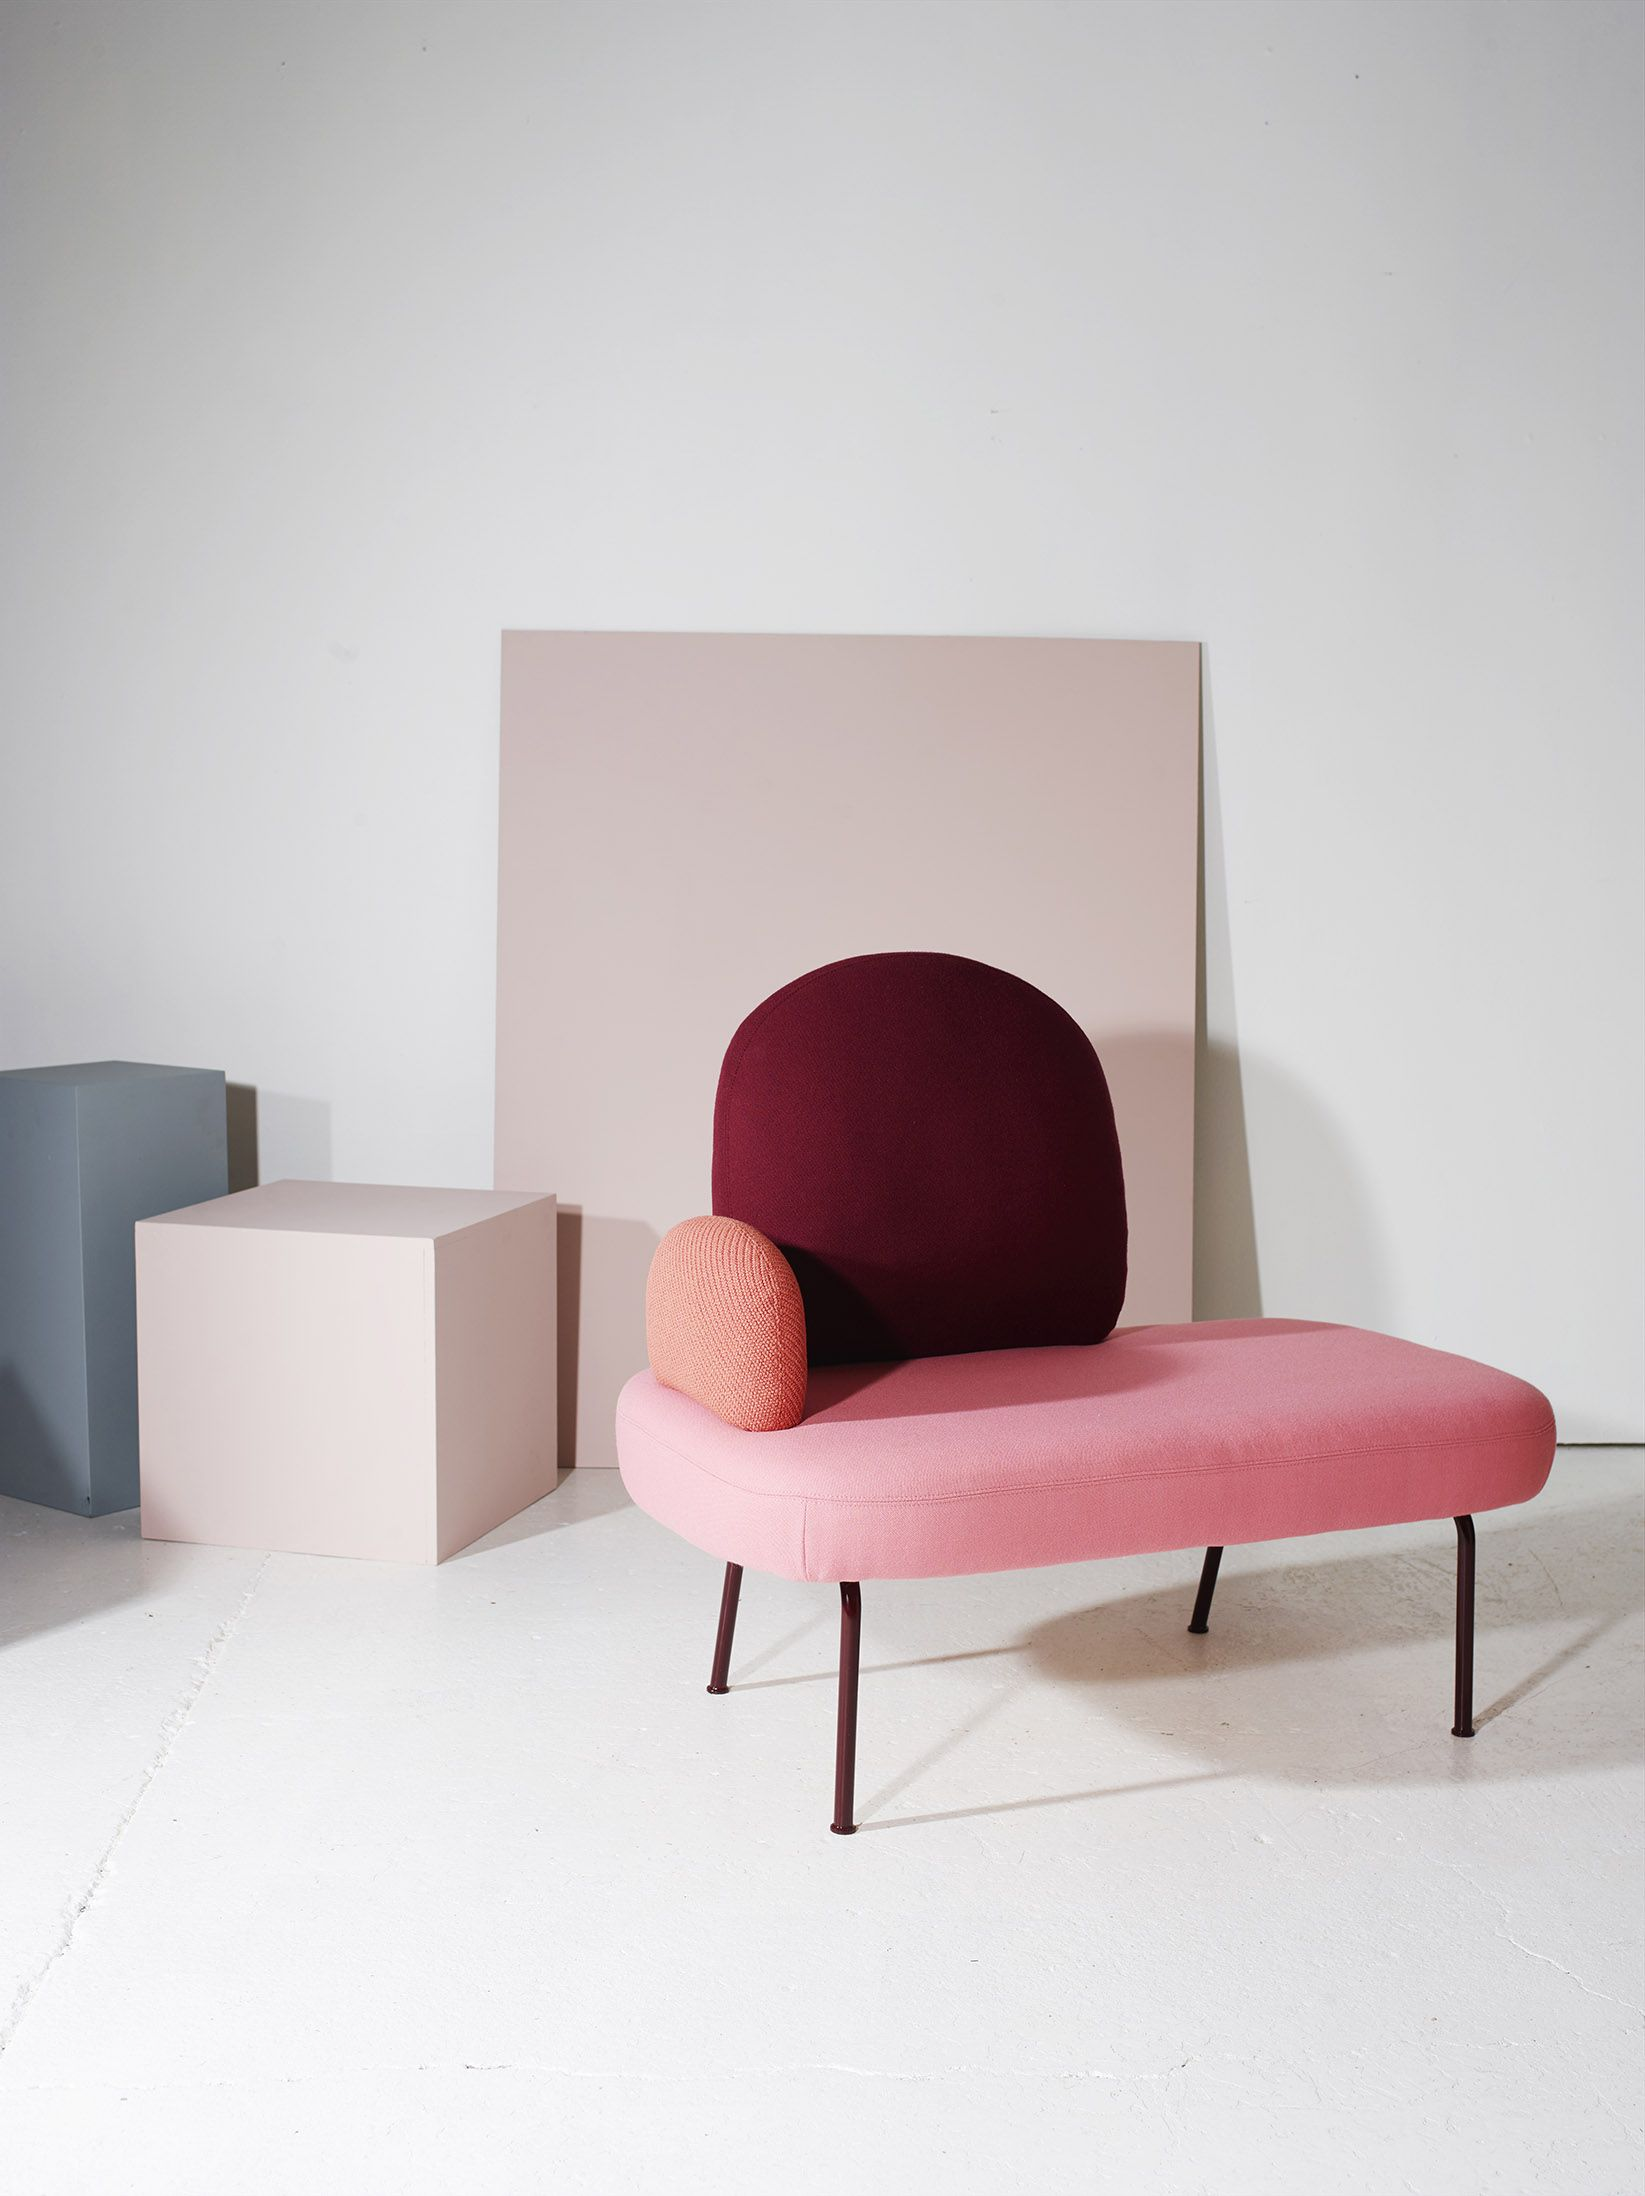 Between by Sara Polmar is neither a sofa or armchair but a prototype